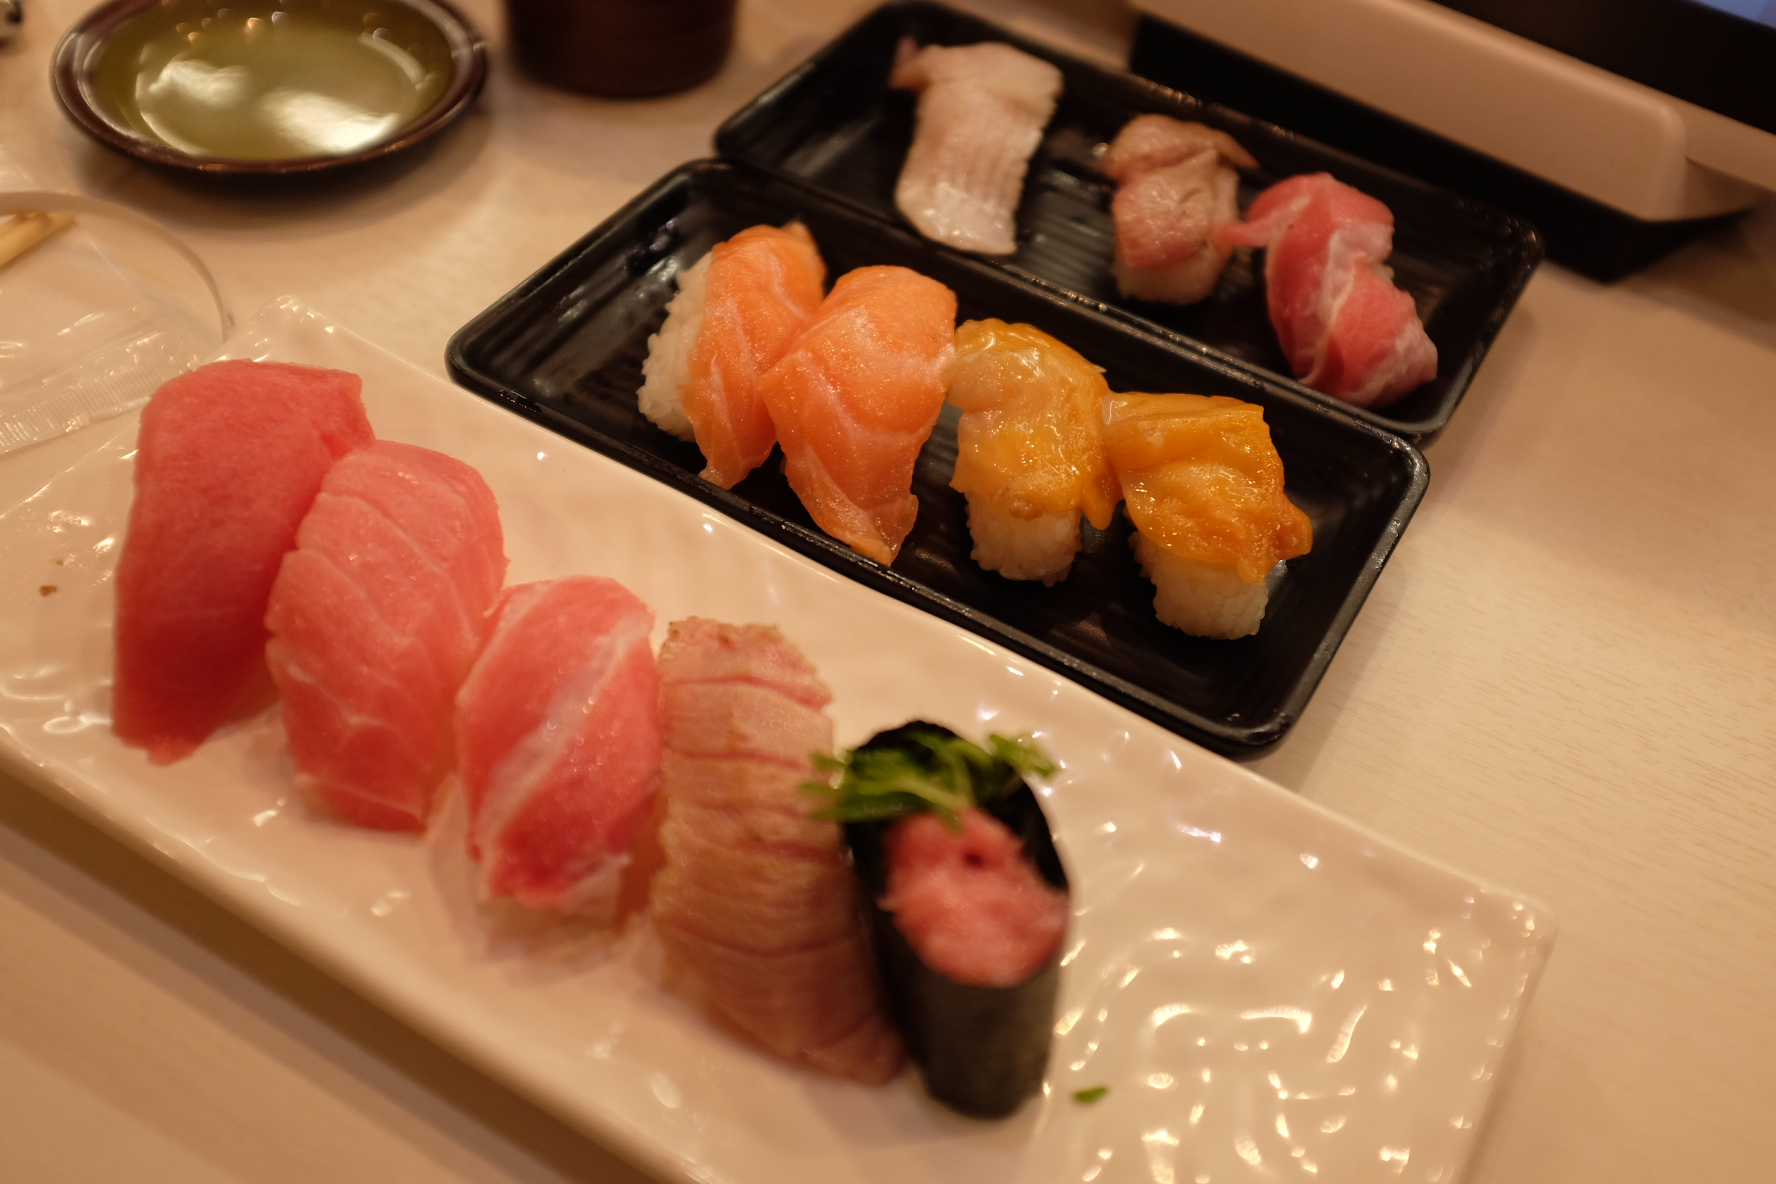 Goodies from a rotating sushi bar in Kyoto. Many different grades and cuts of tuna nigiri for a very affordable price.